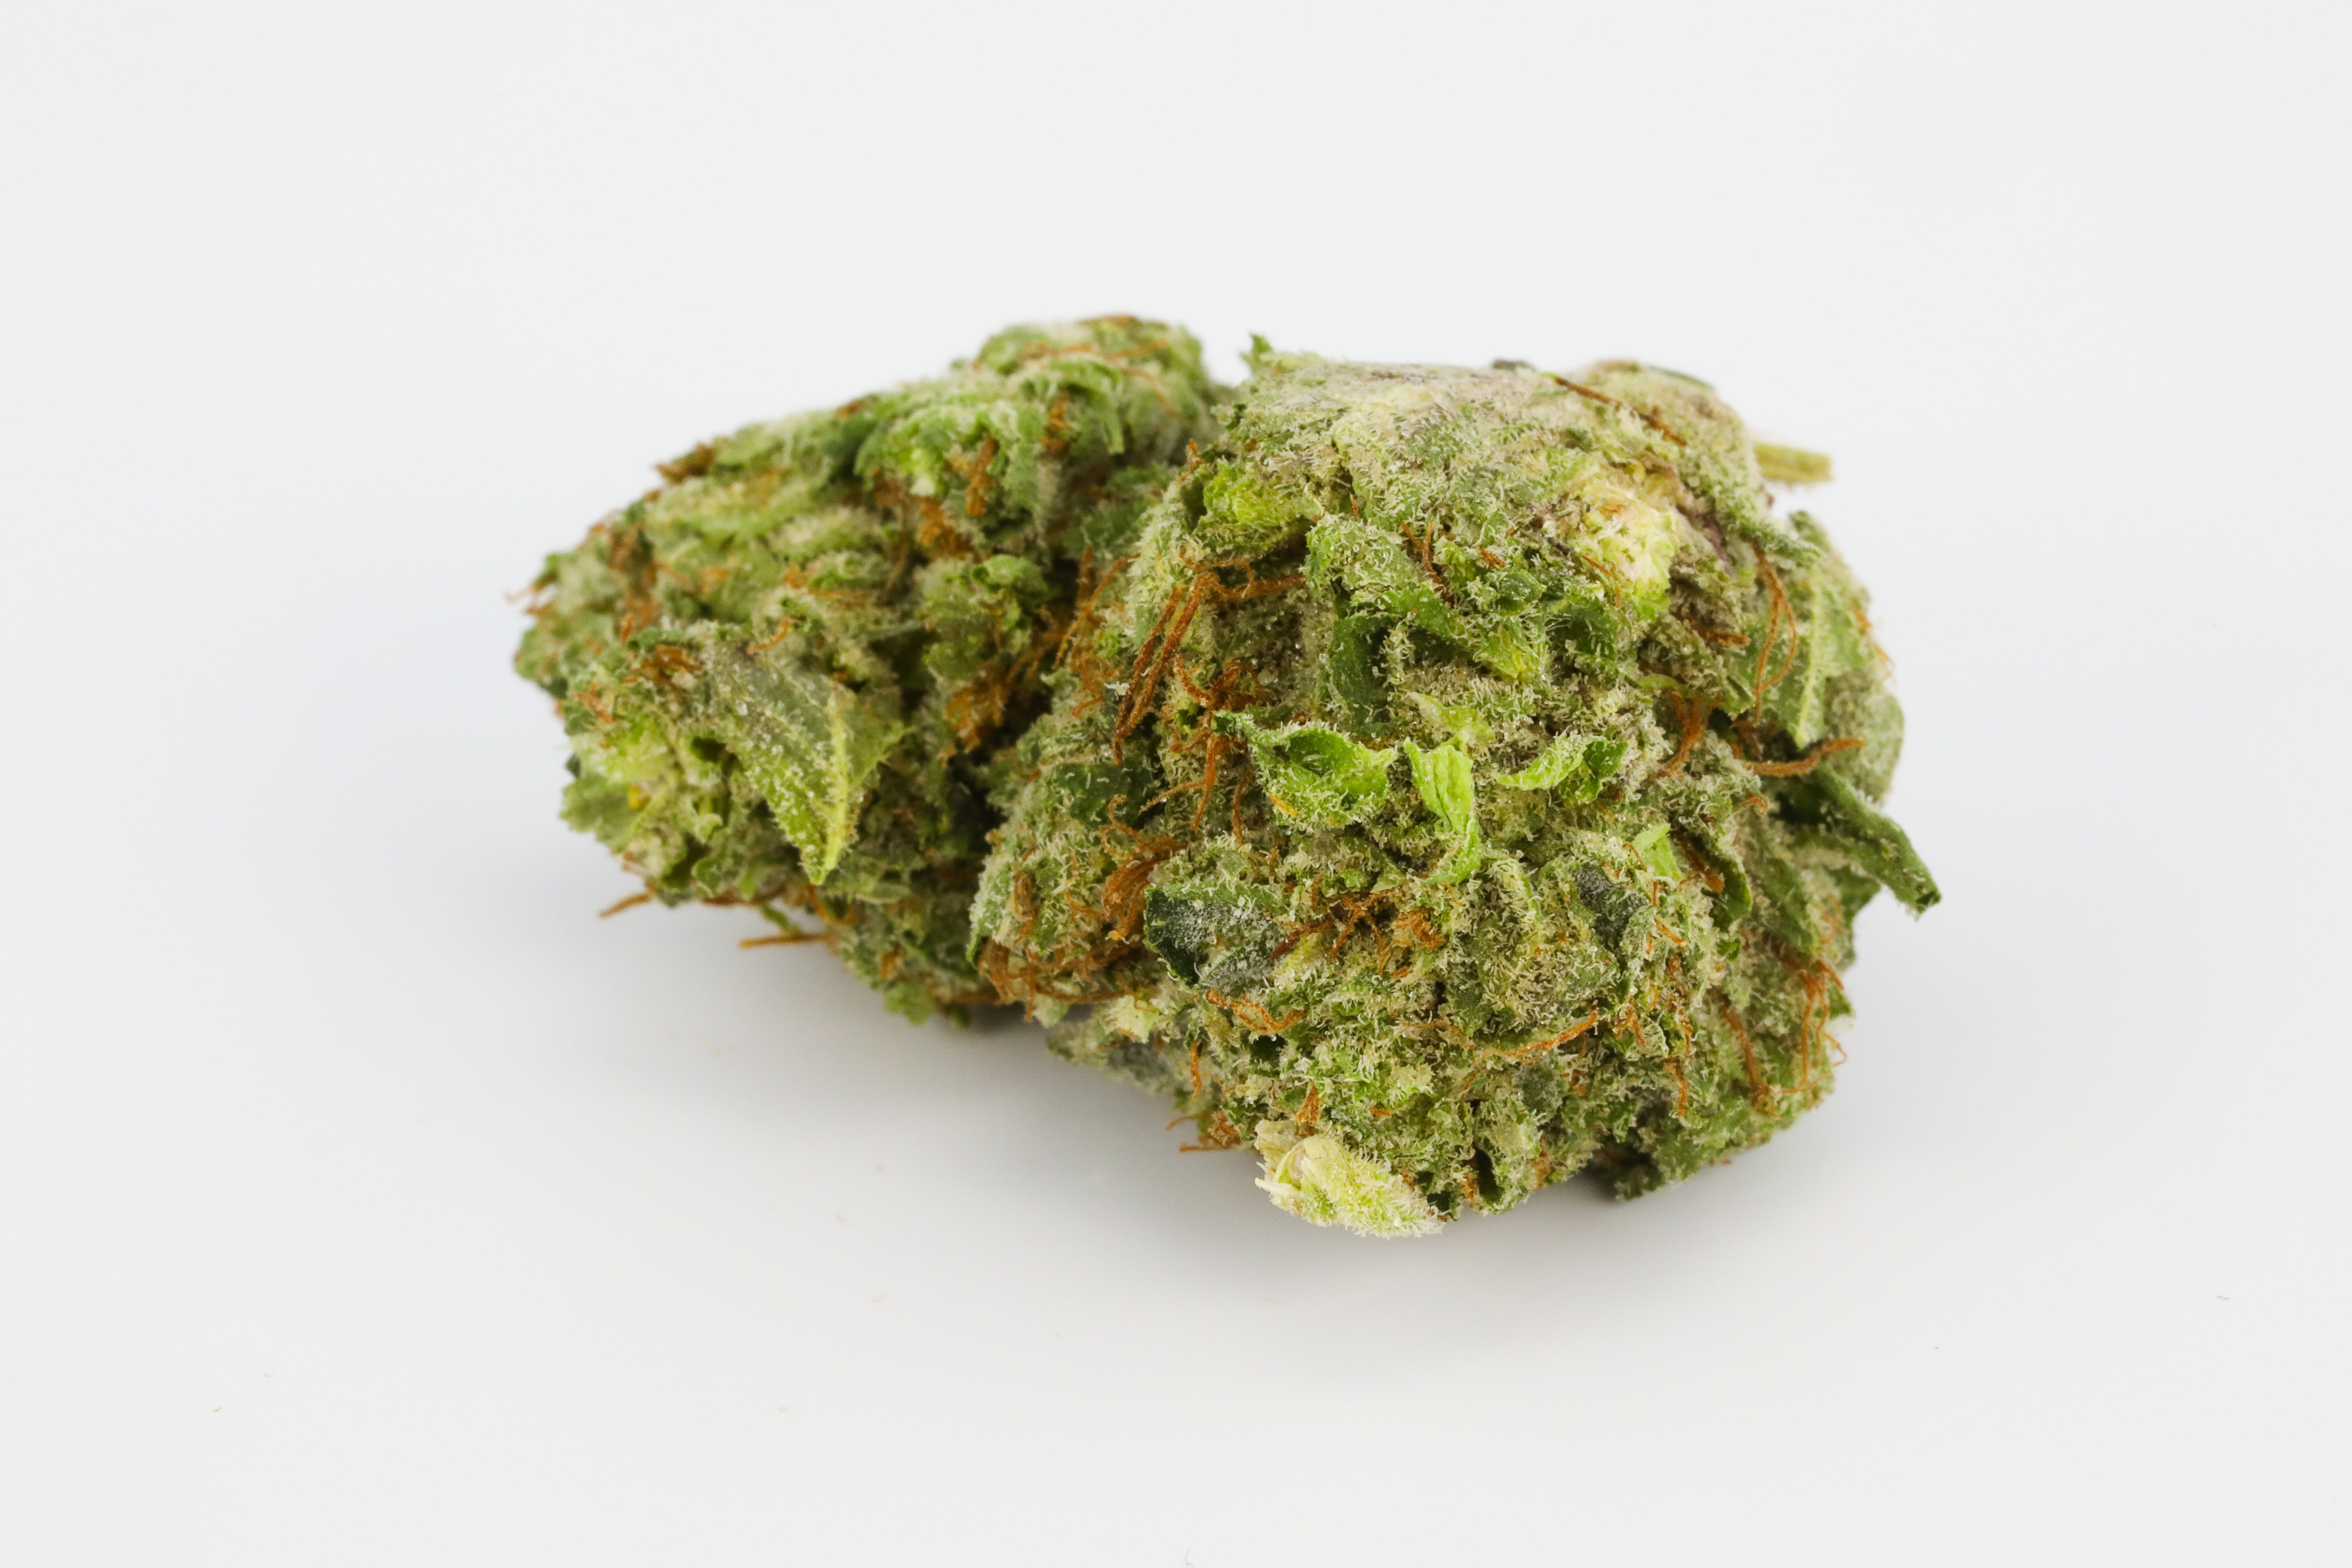 0G8A3214 The Top 5 Cannabis Strains for Hangover Symptoms